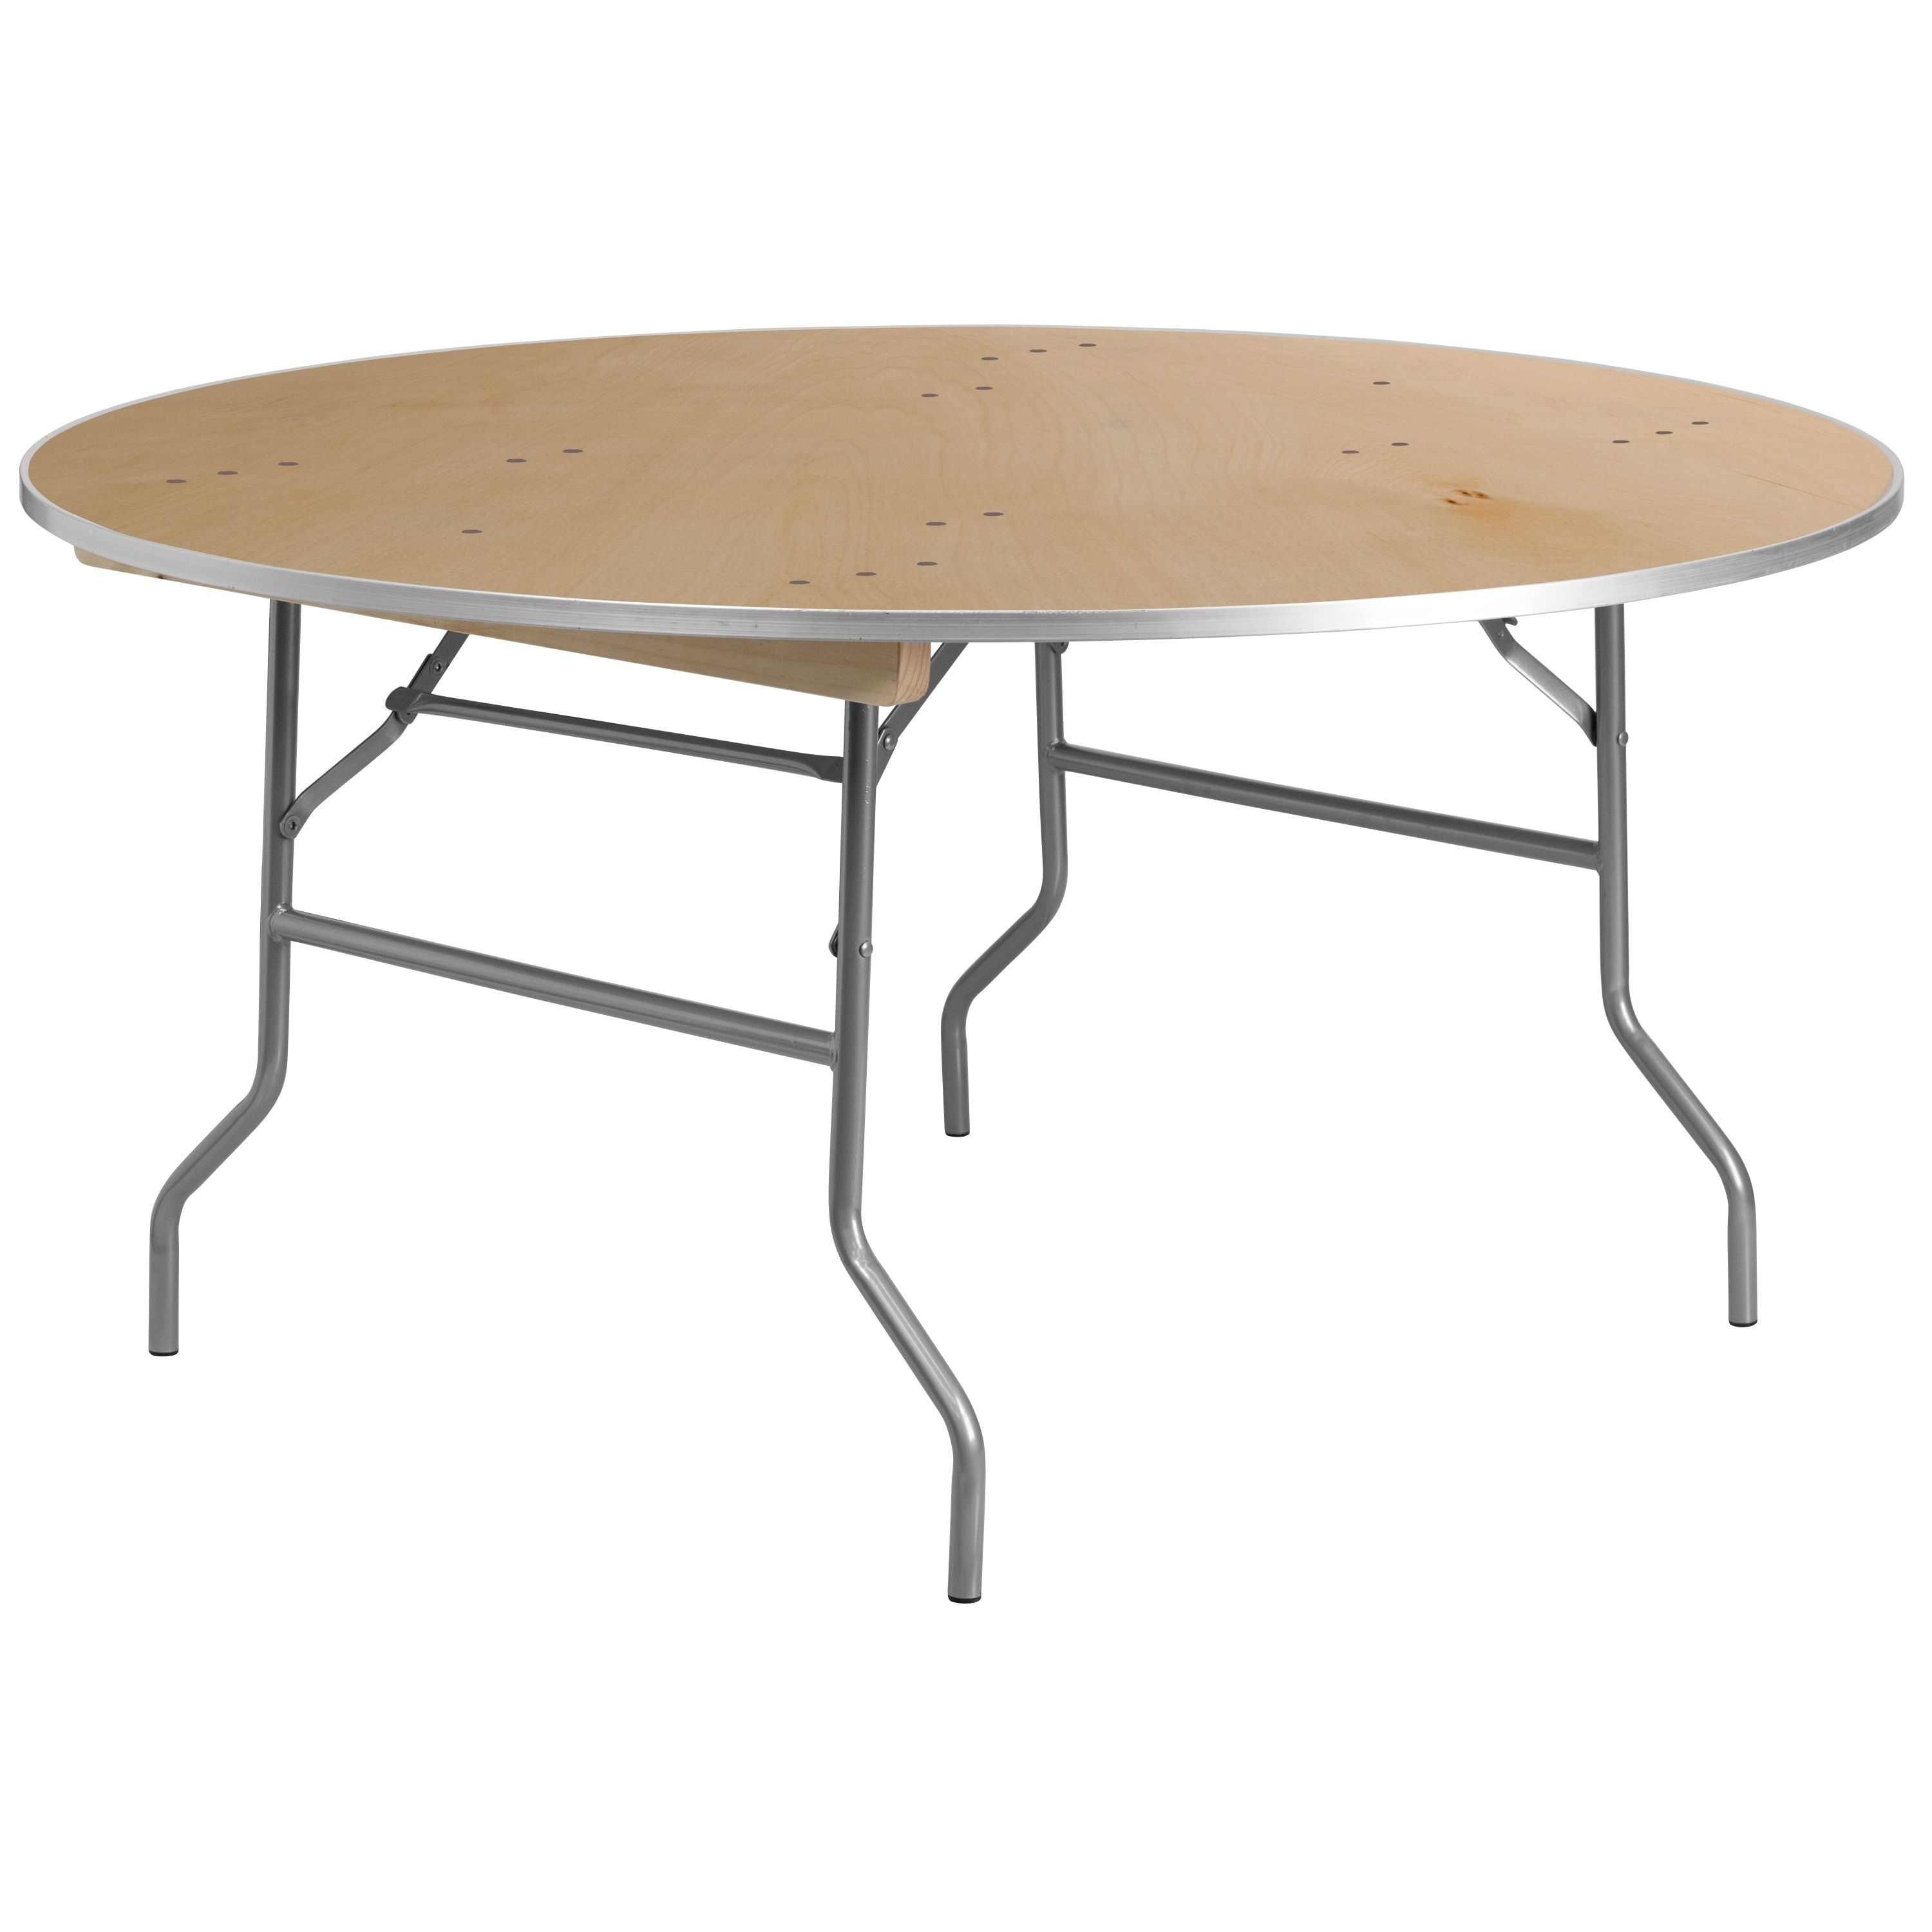 - 60-inch Round Heavy Duty Birchwood Folding Banquet Table Natural